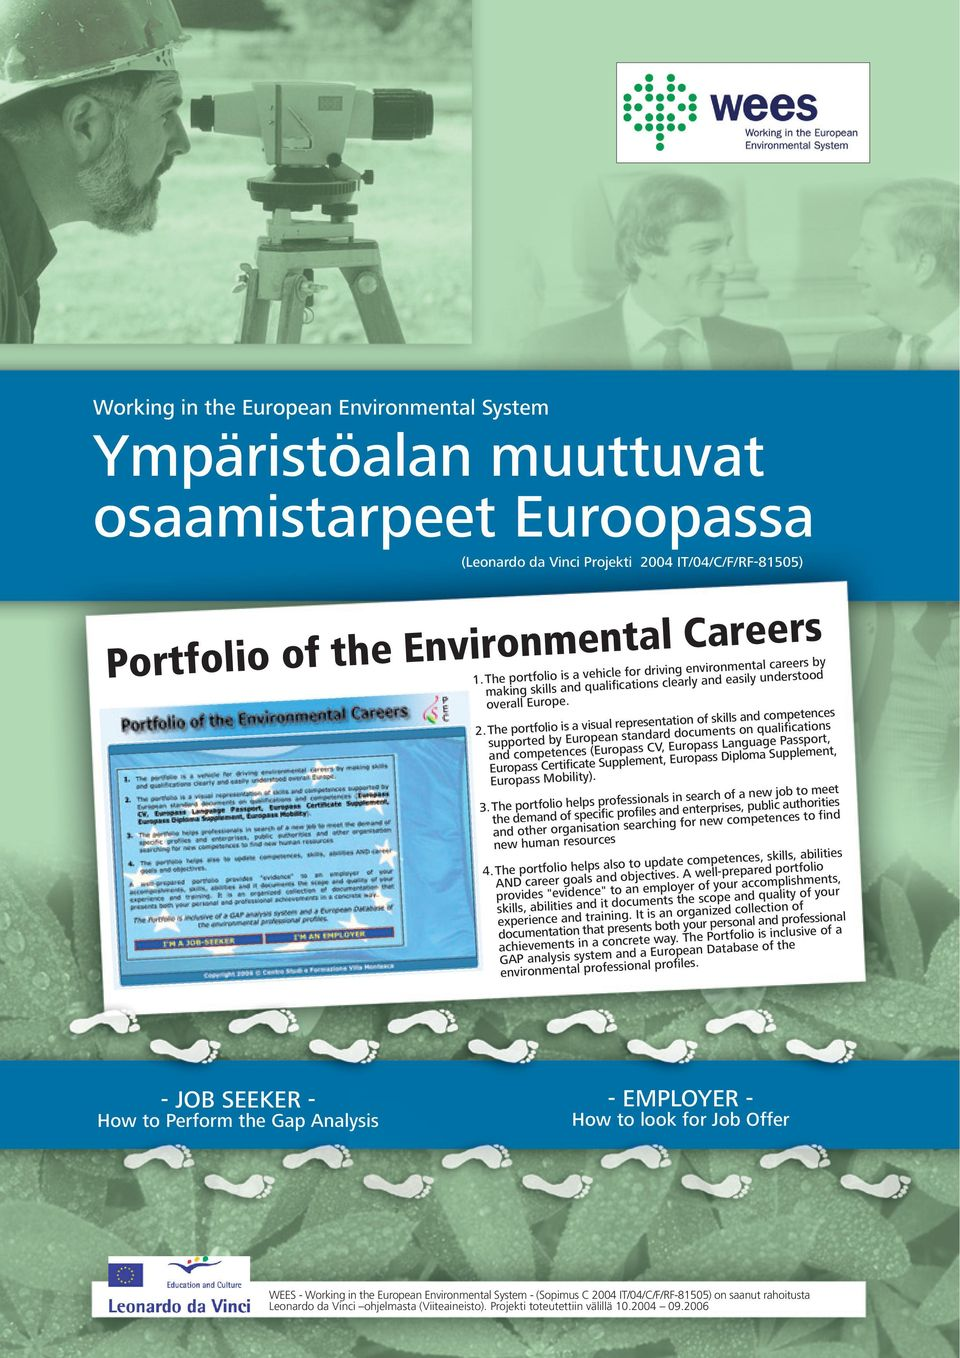 The portfolio is a visual representation of skills and competences supported by European standard documents on qualifications and competences (Europass CV, Europass Language Passport, Europass